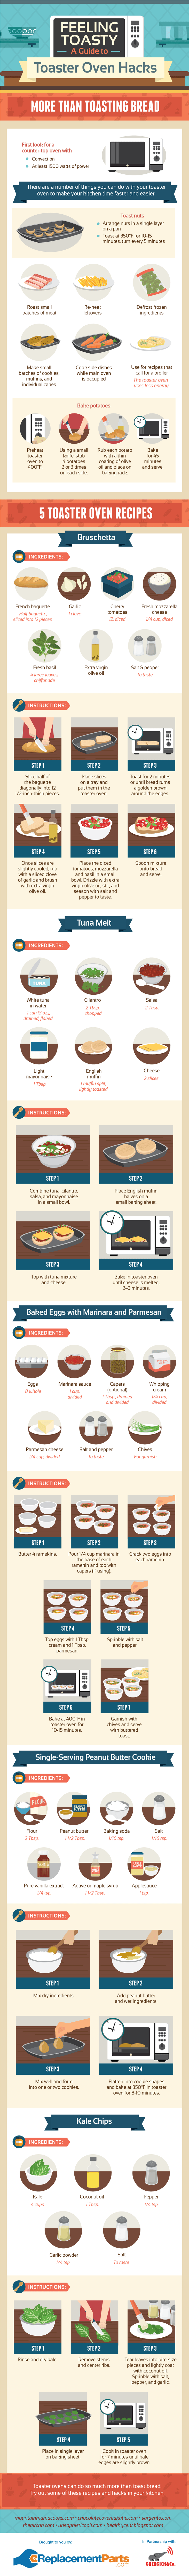 guide-to-toaster-oven-hacks and 5 easy toaster oven recipes